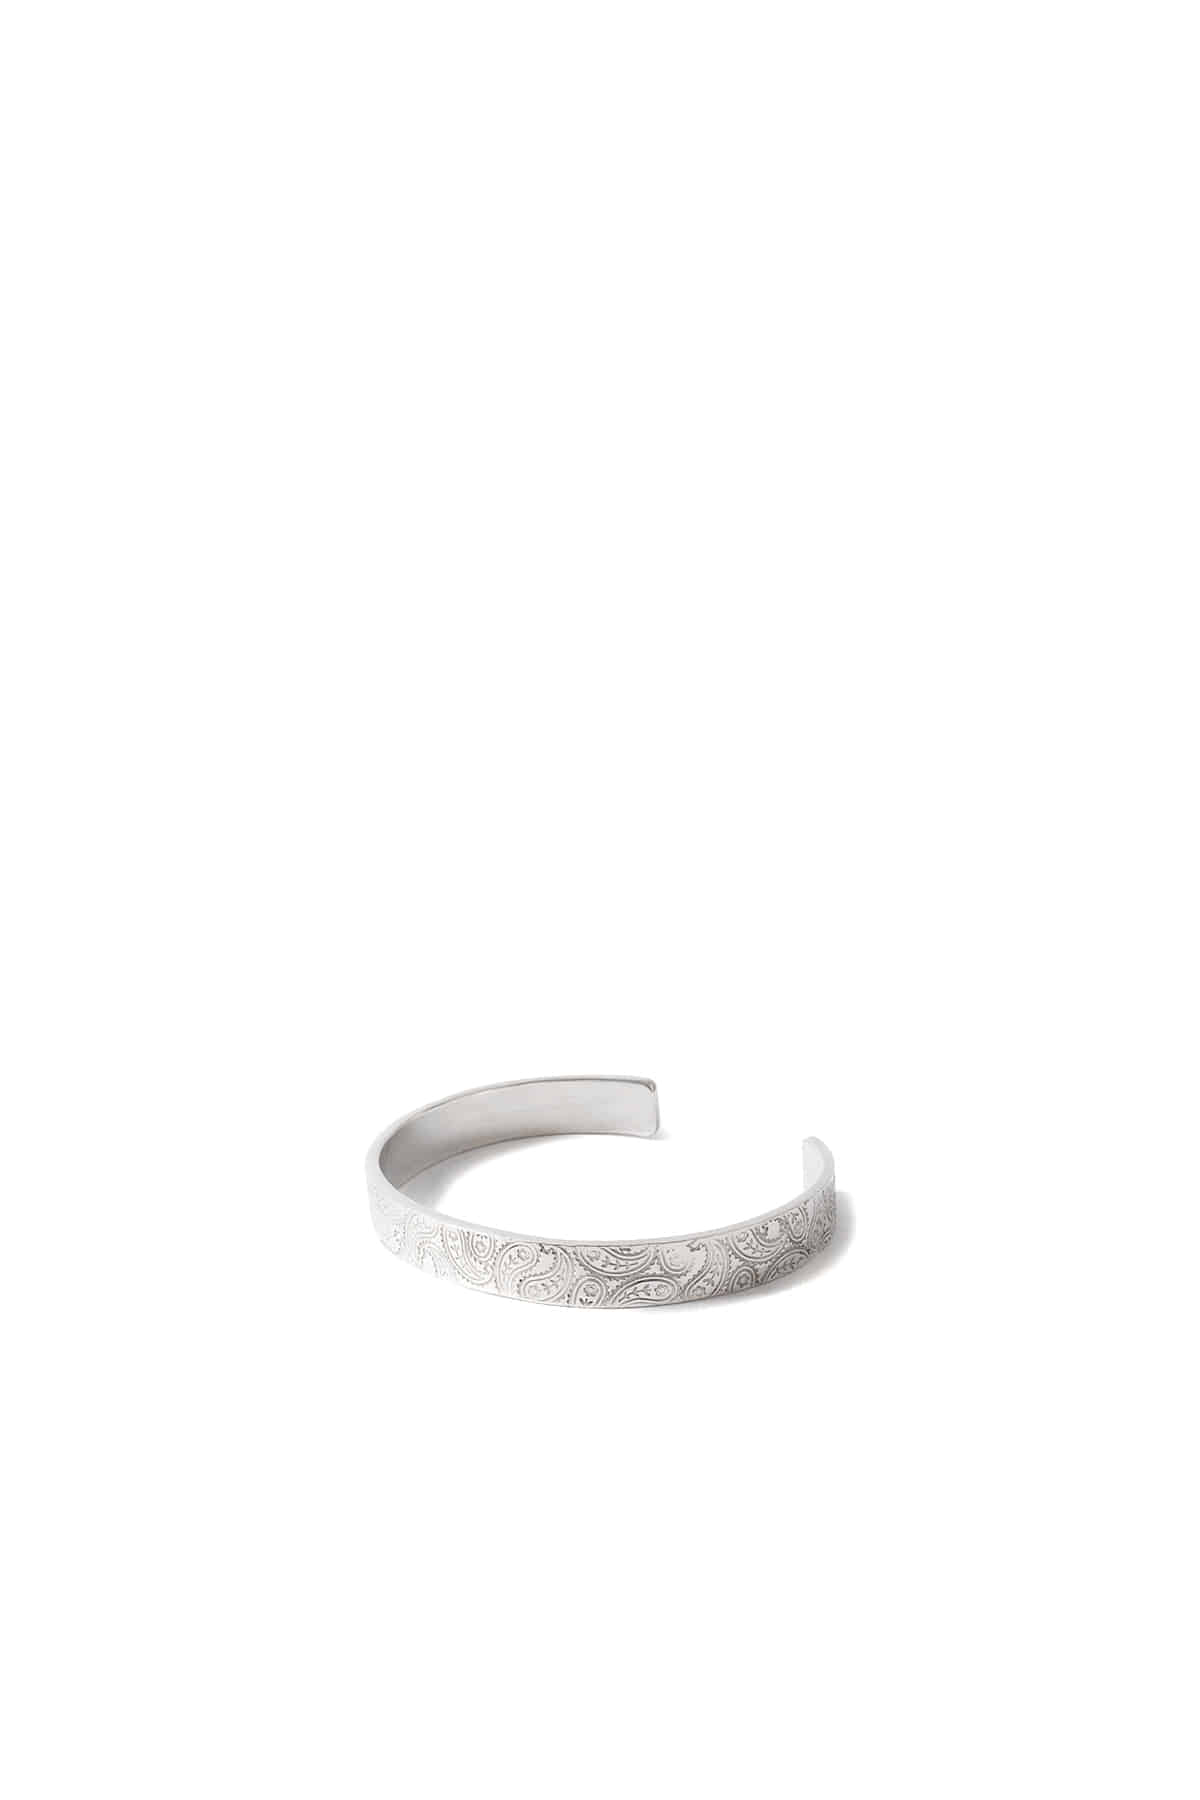 North Works : Stamped Bangle - W219 (Silver)